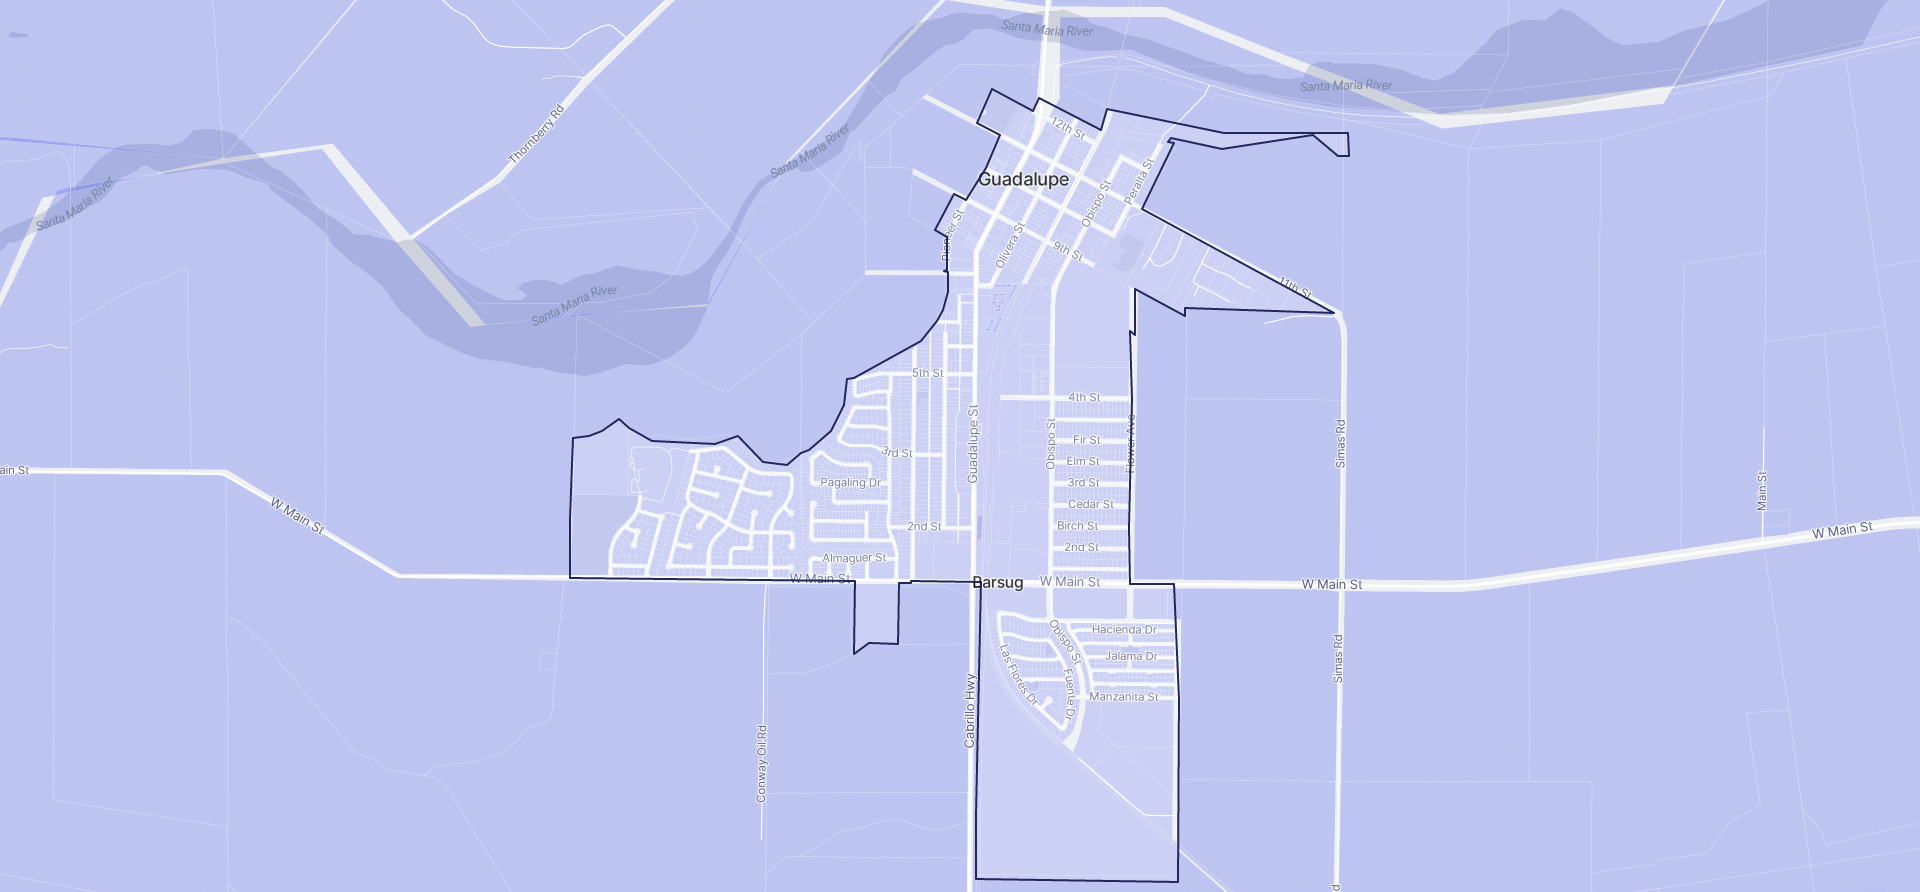 Image of Guadalupe boundaries on a map.